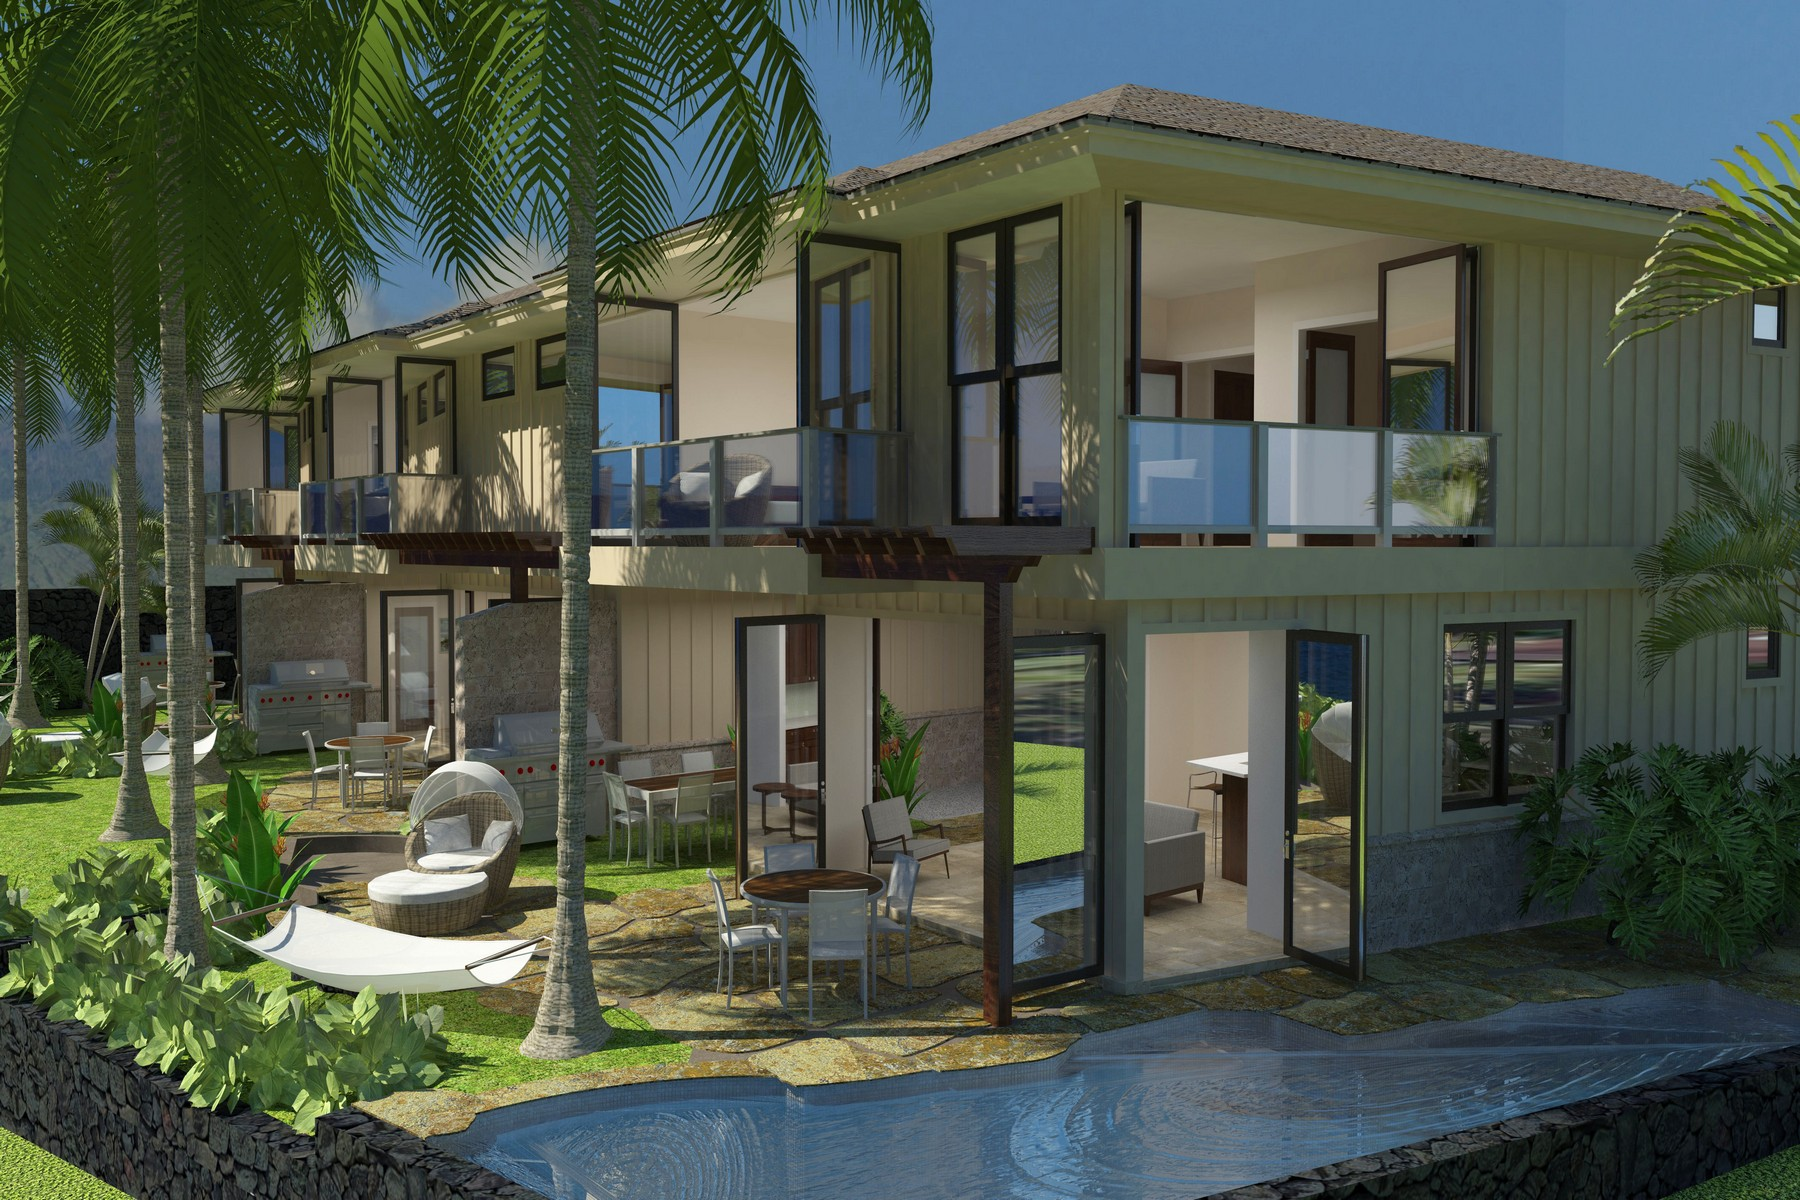 Appartement en copropriété pour l Vente à Maui New Construction Luxury Beachfront Condo 2192 Iliili Road, Maui Beach Place Orchid Kihei, Hawaii 96753 États-Unis